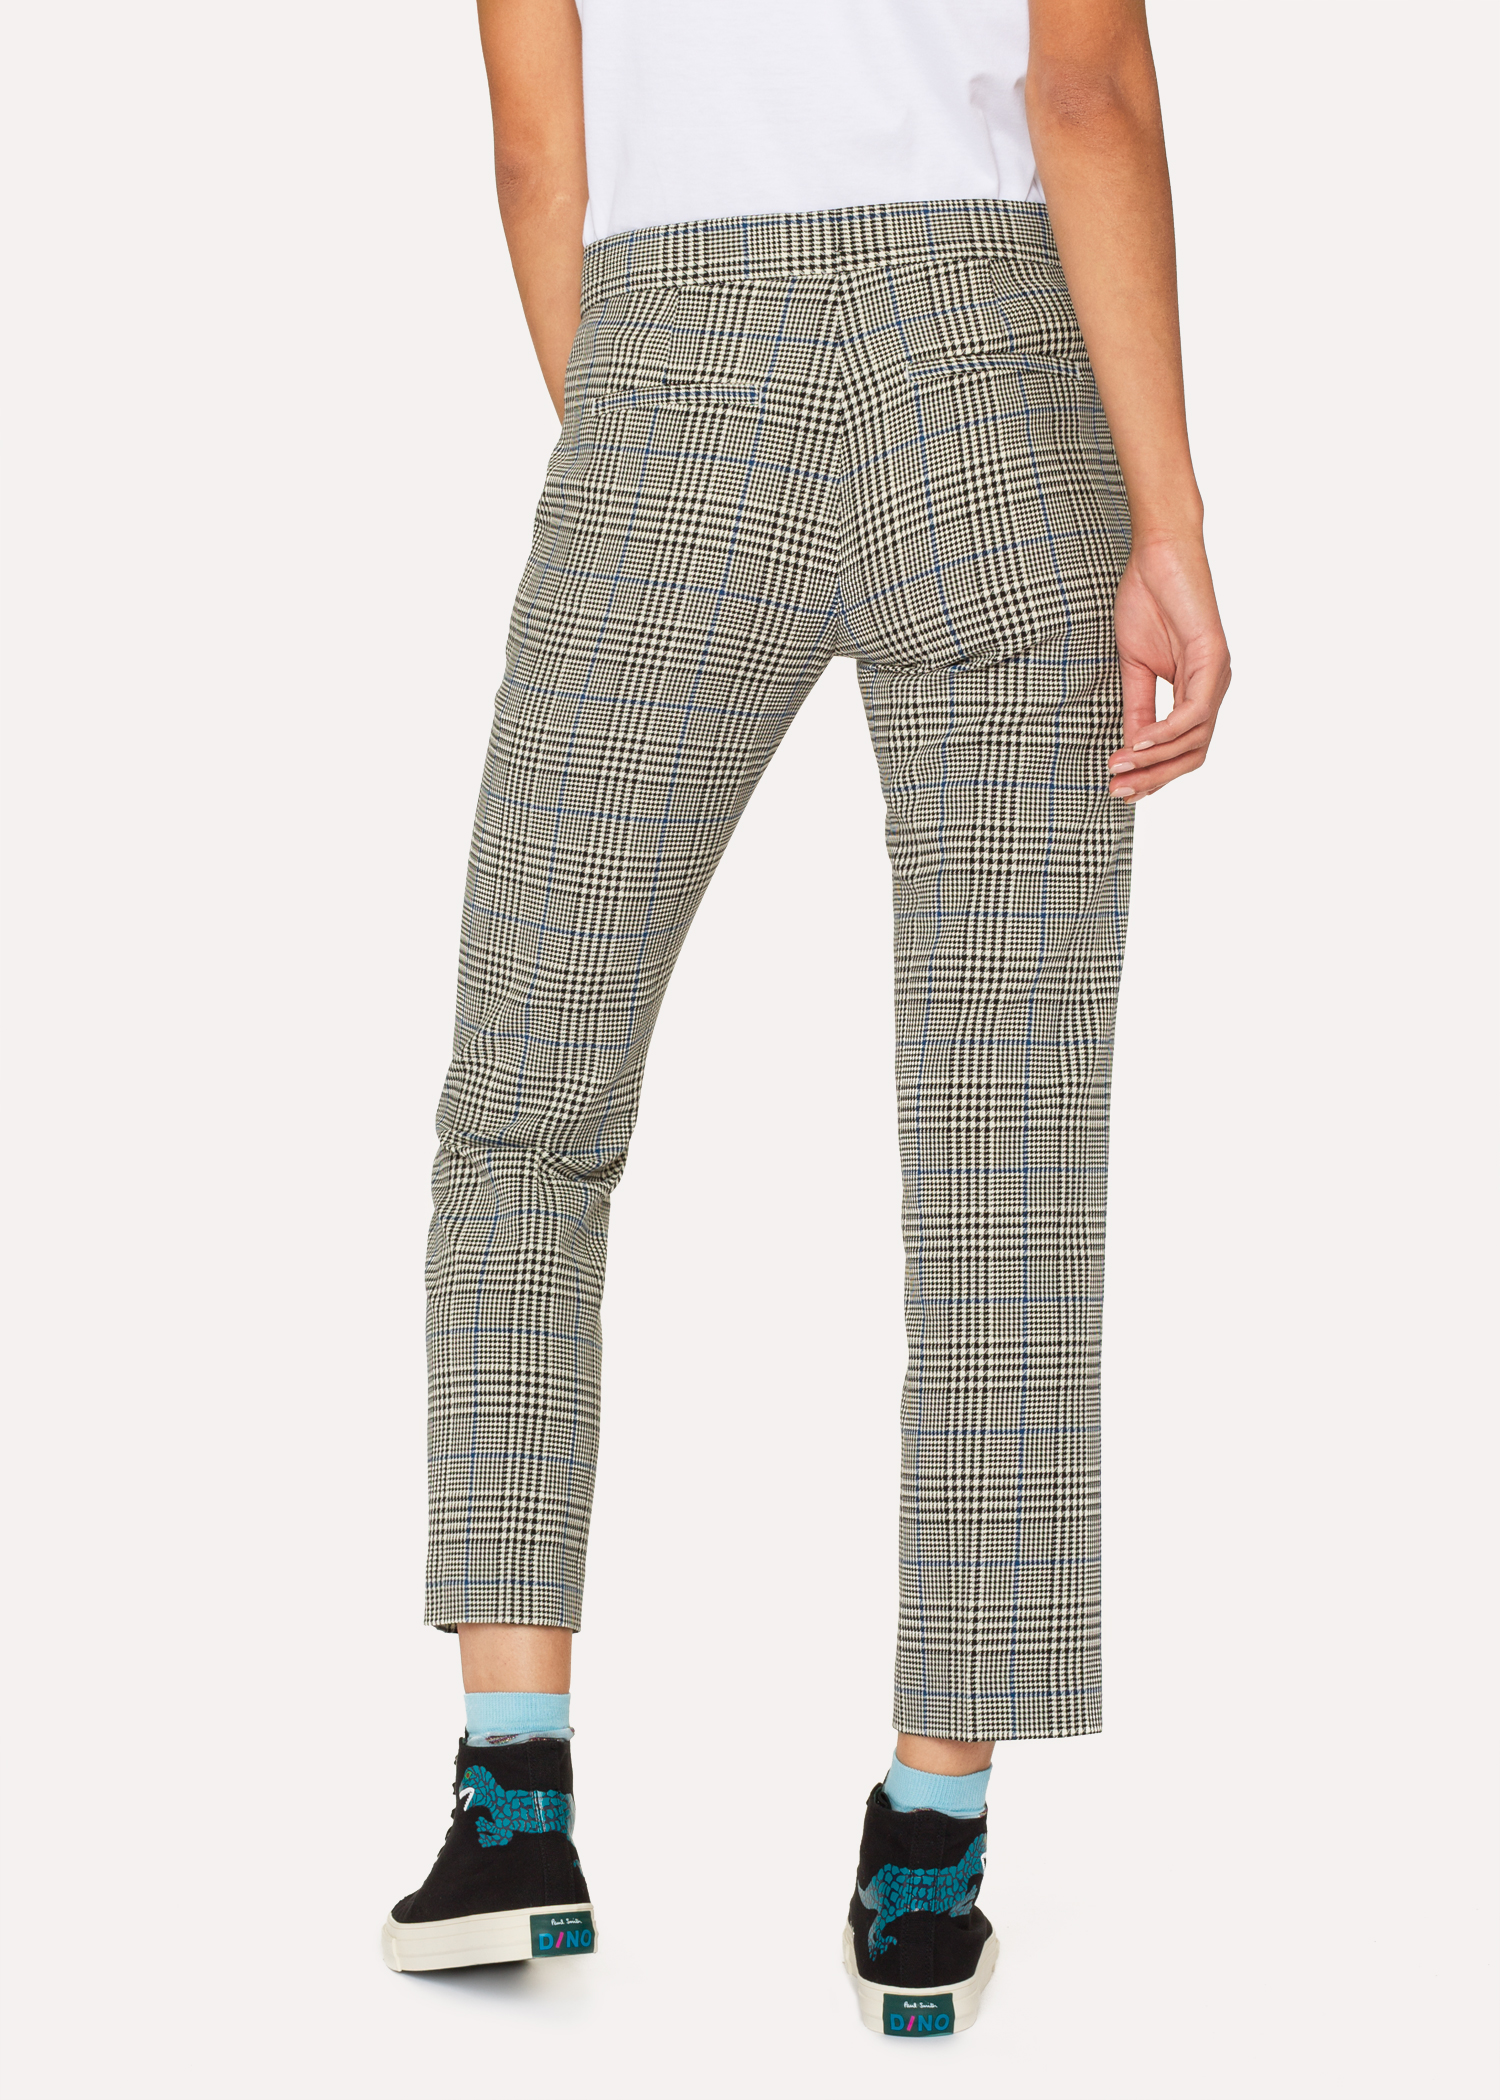 d3258fef2d68c Pantalon Femme À Carreaux Noirs Et Blancs Et Rayures Bleues Coupe Slim Paul  Smith